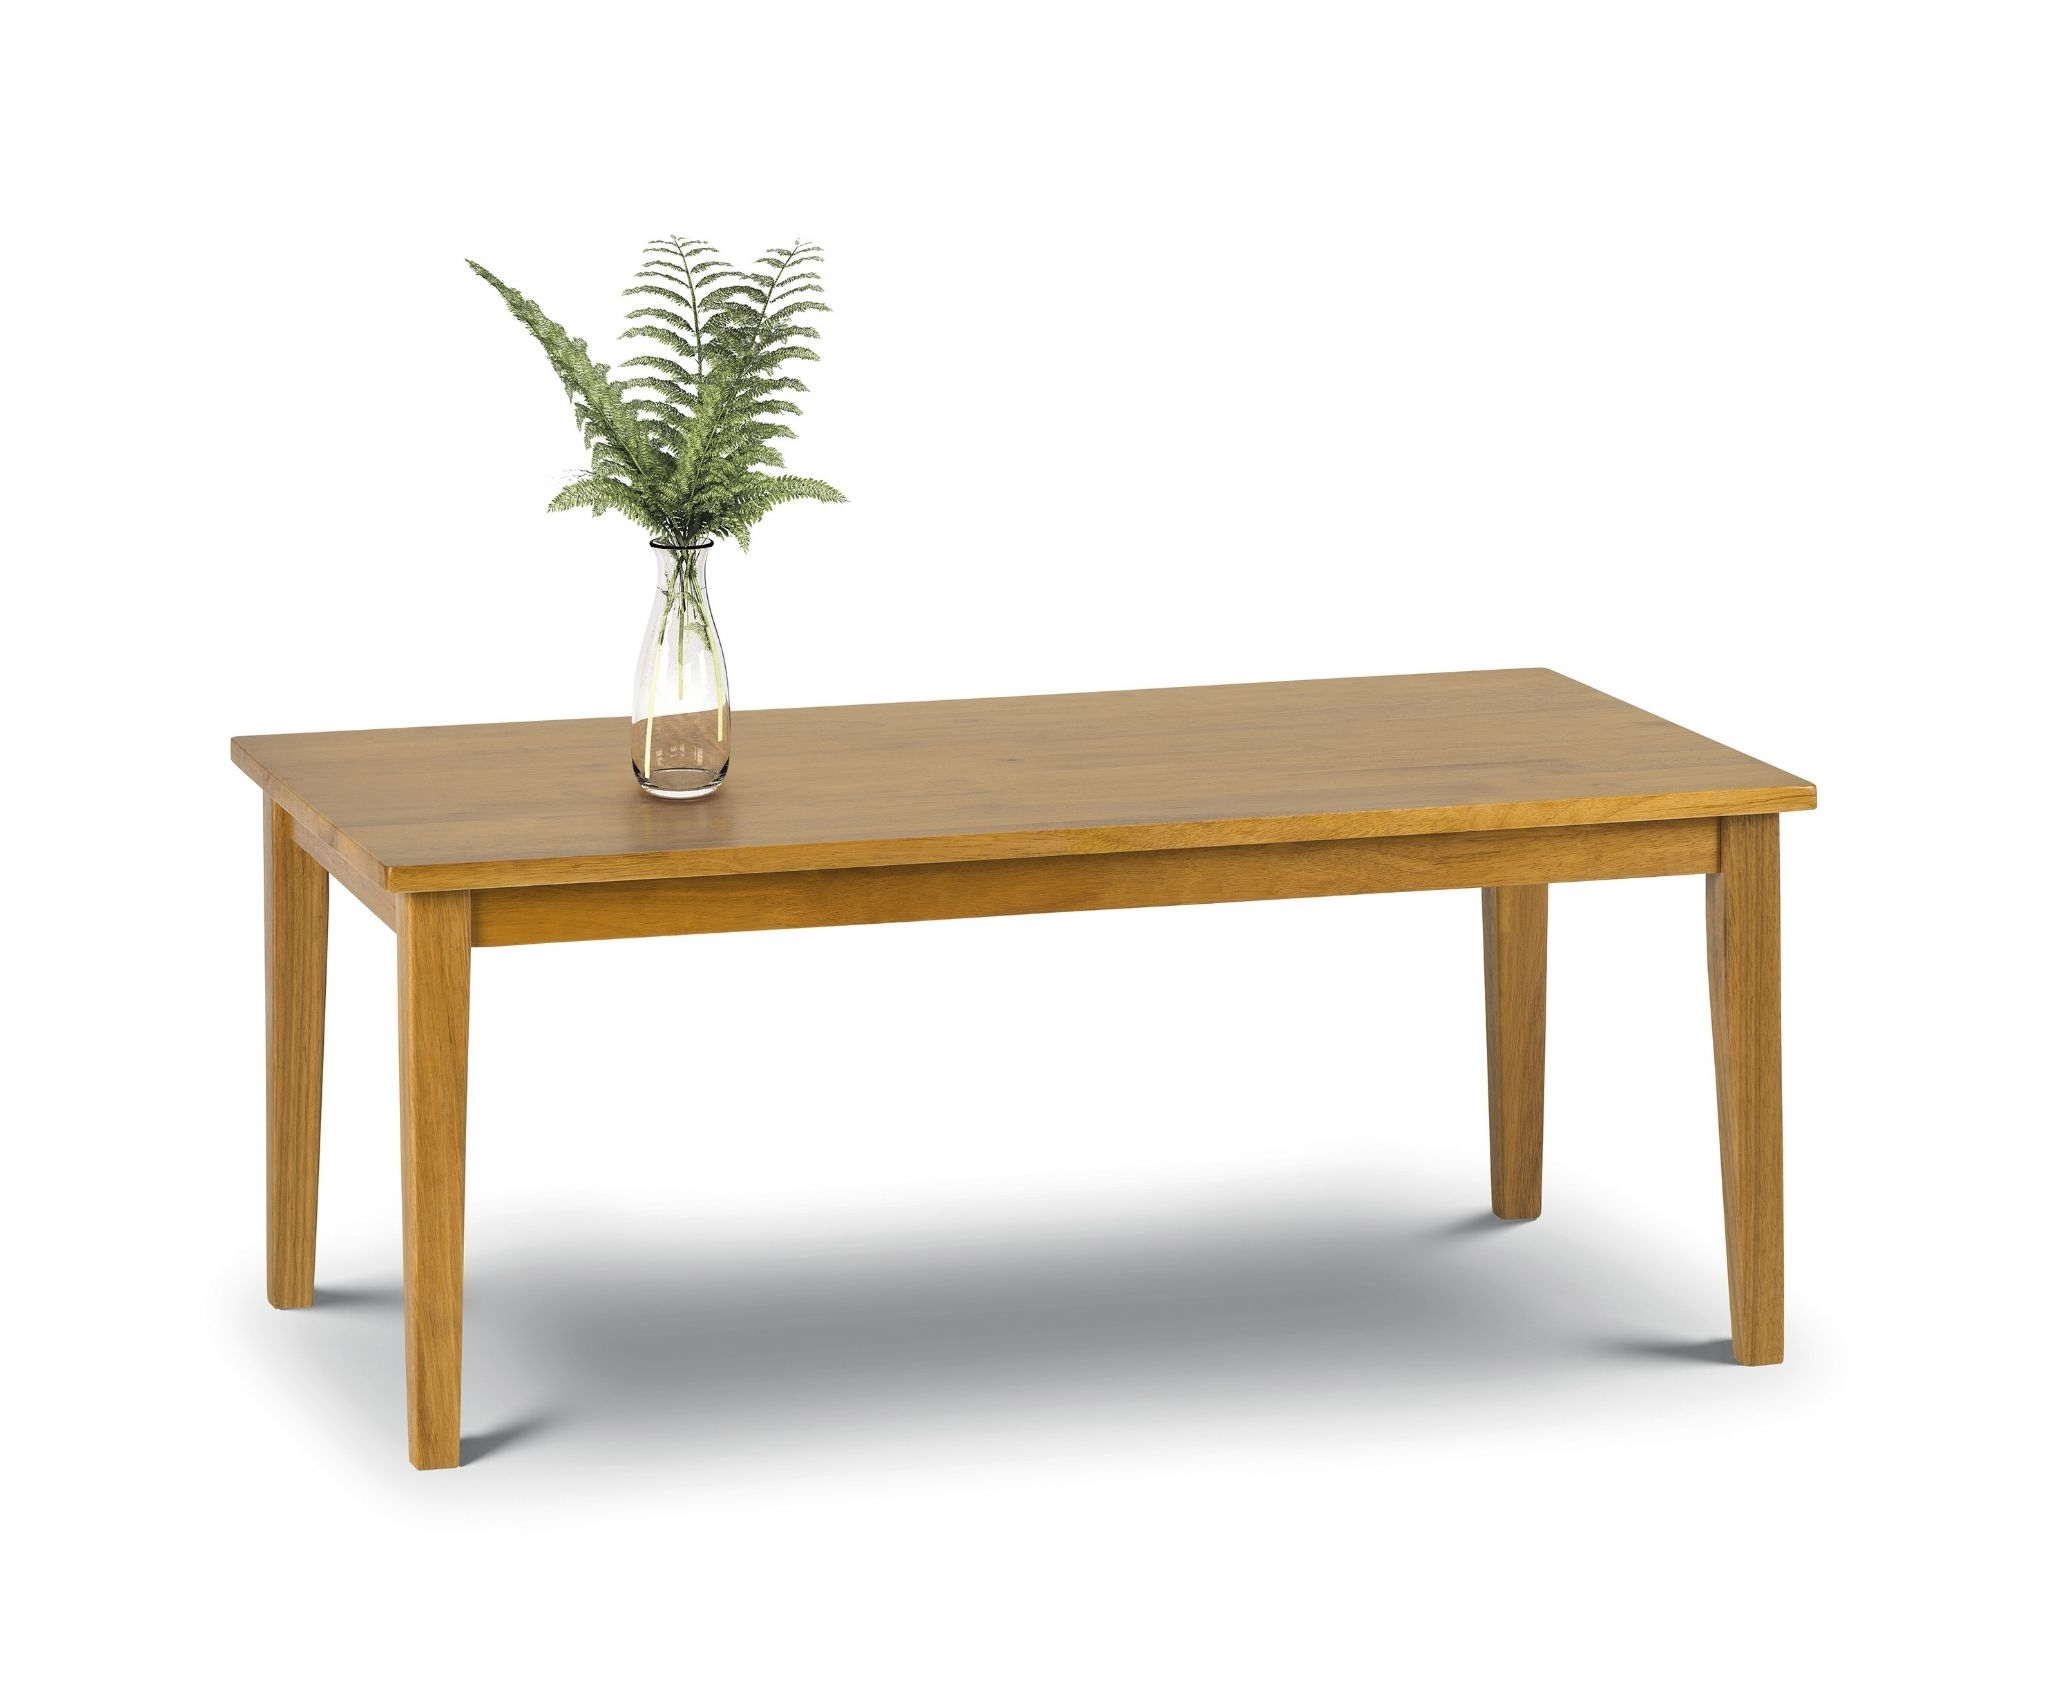 Toledo Natural Light Oak Finish Coffee Table Jb151 Inside Most Current Light Natural Coffee Tables (View 17 of 20)